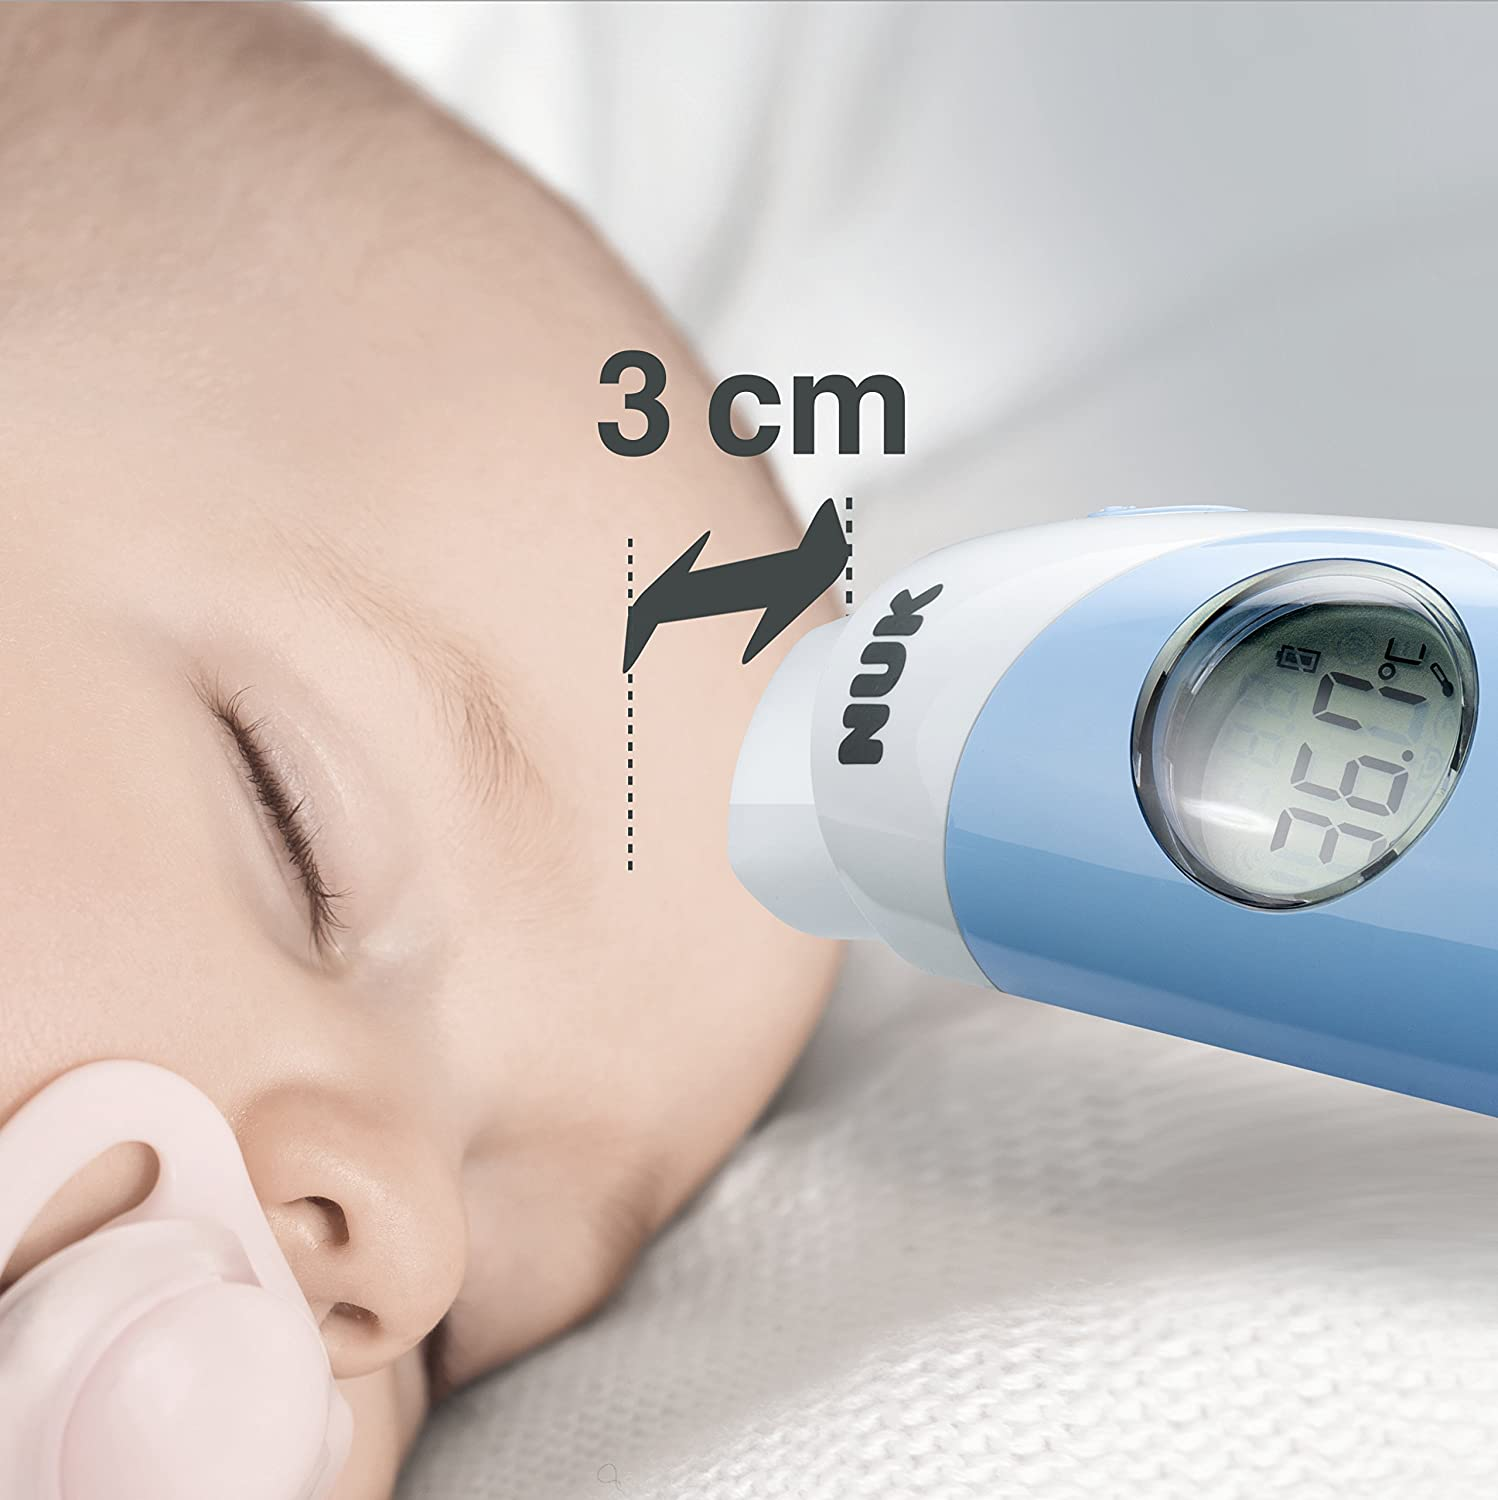 Amazon.com: NUK Flash Baby Thermometer, Contactless Infra-Red Forehead Measurement, Quick and Hygienic Measurement in Seconds by NUK: Health & Personal Care